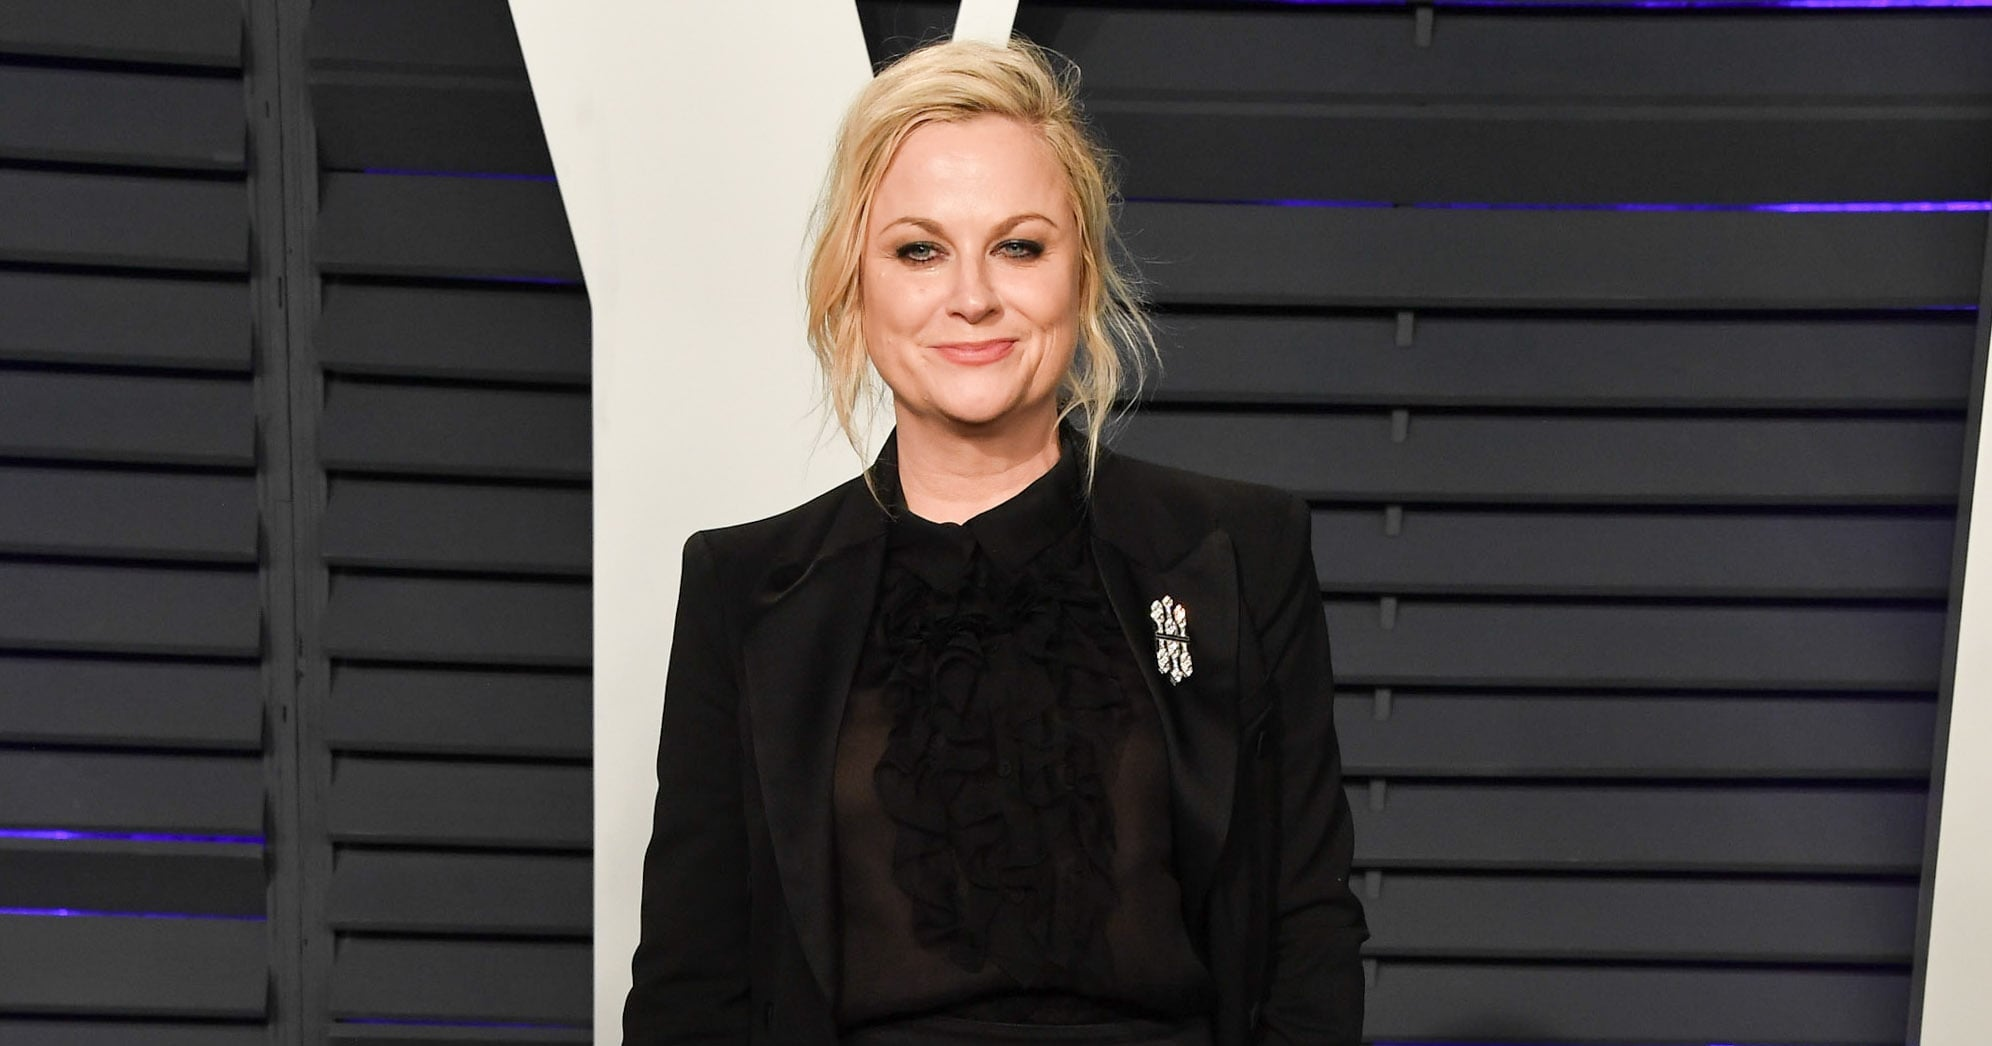 Amy Poehler Makes a Pointed Statement About Women Having to Answer For Men's Actions